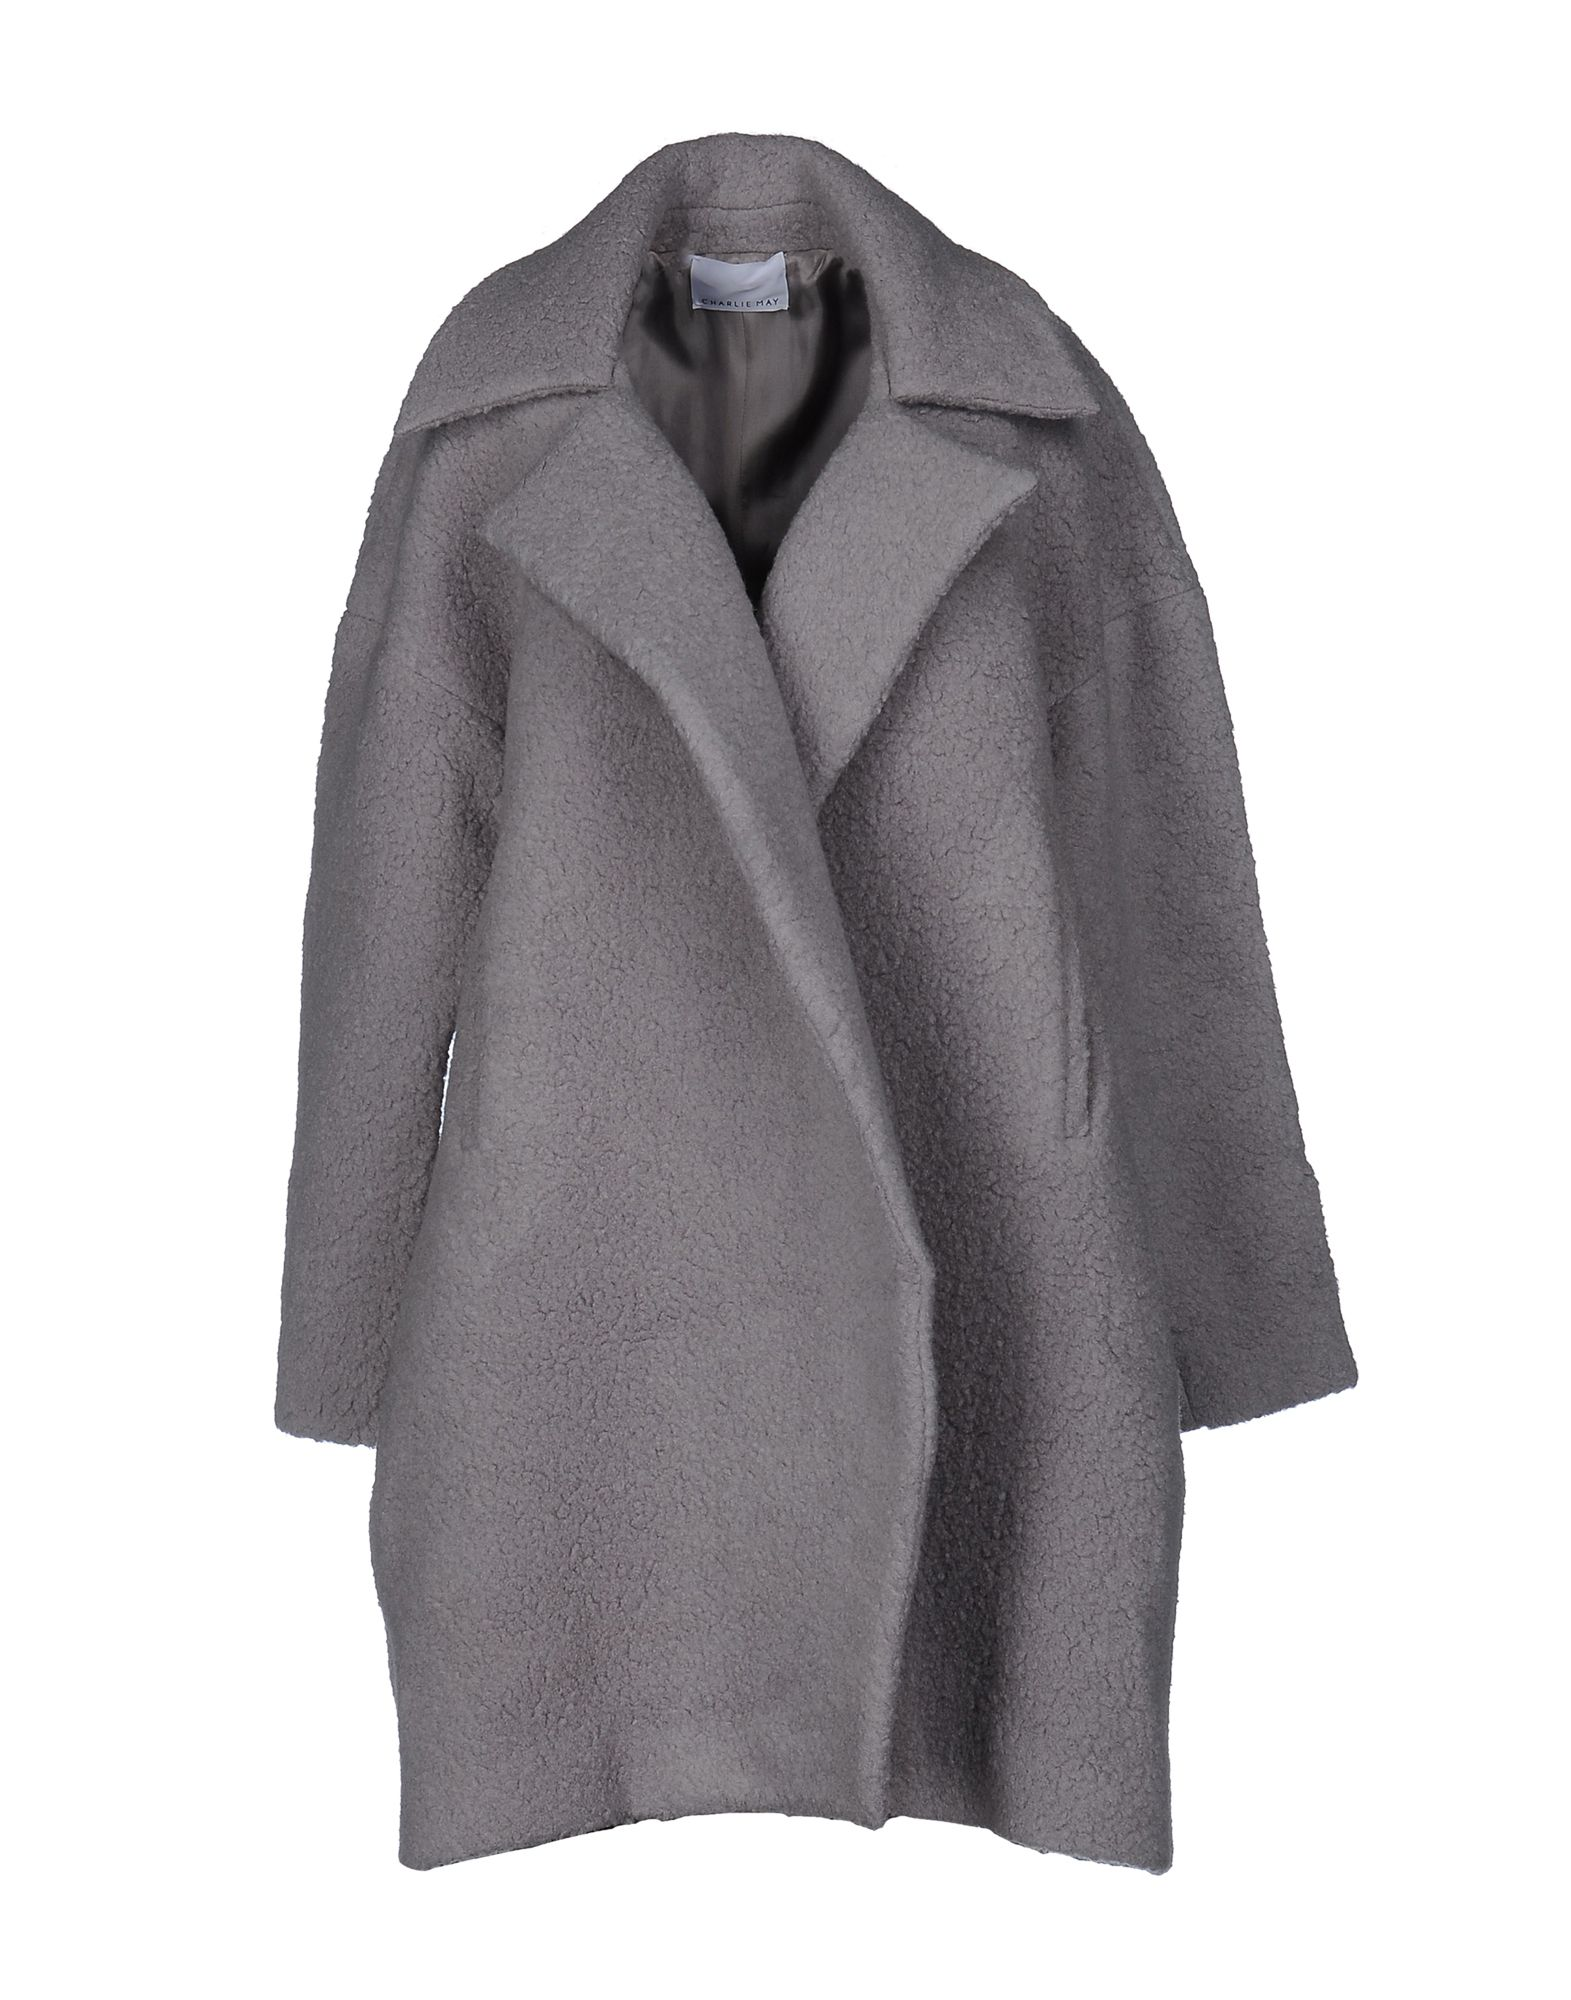 CHARLIE MAY Coat in Light Grey